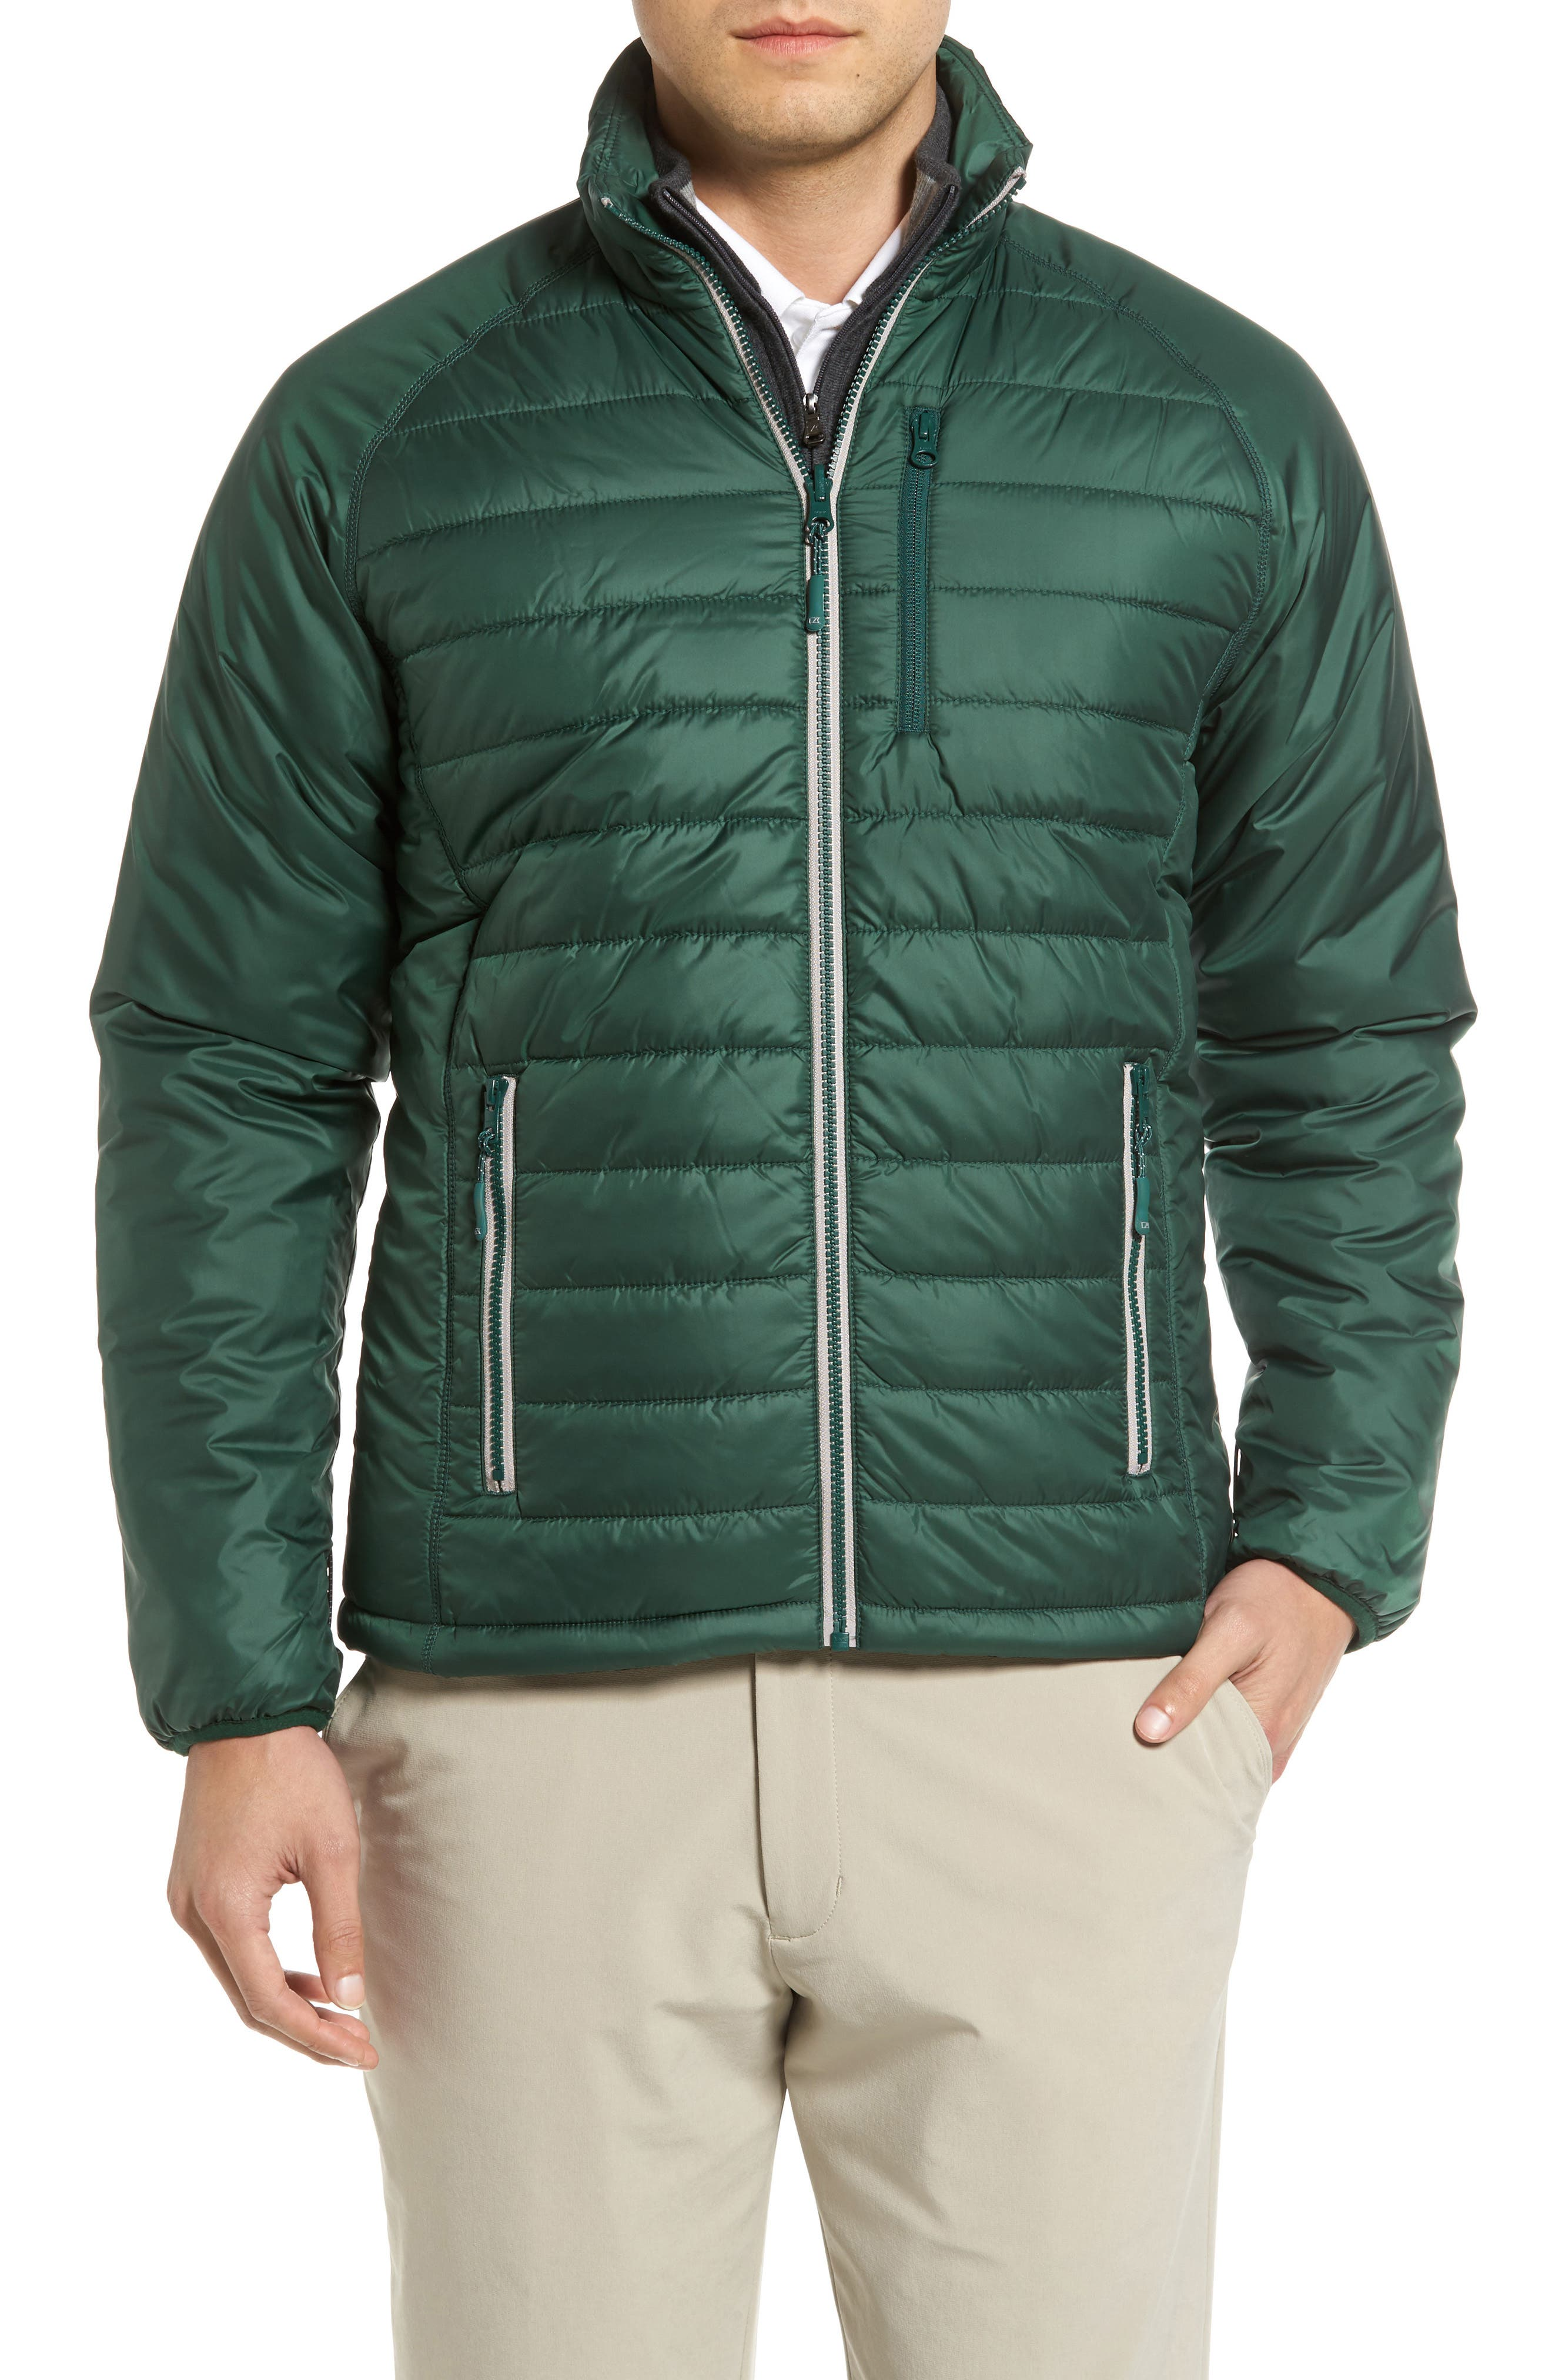 Barlow Pass Quilted Jacket,                             Main thumbnail 1, color,                             001